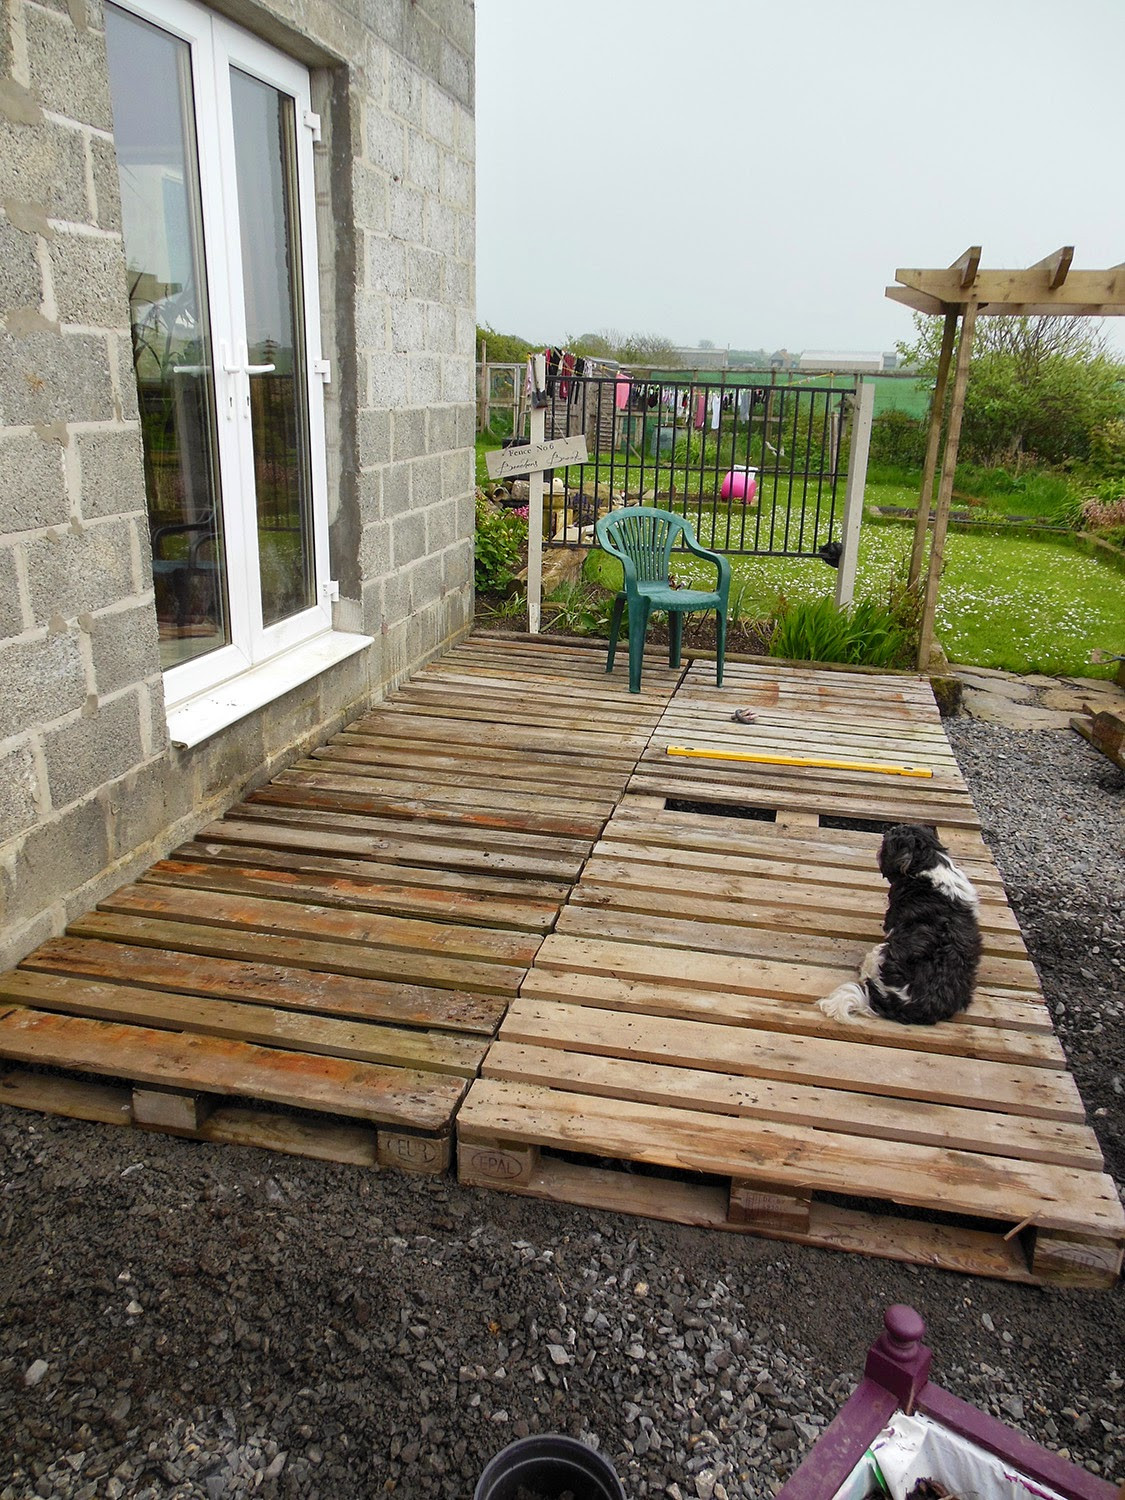 Best ideas about Pallet Decking DIY . Save or Pin Coach House Crafting on a bud Diy pallet wood decking Now.